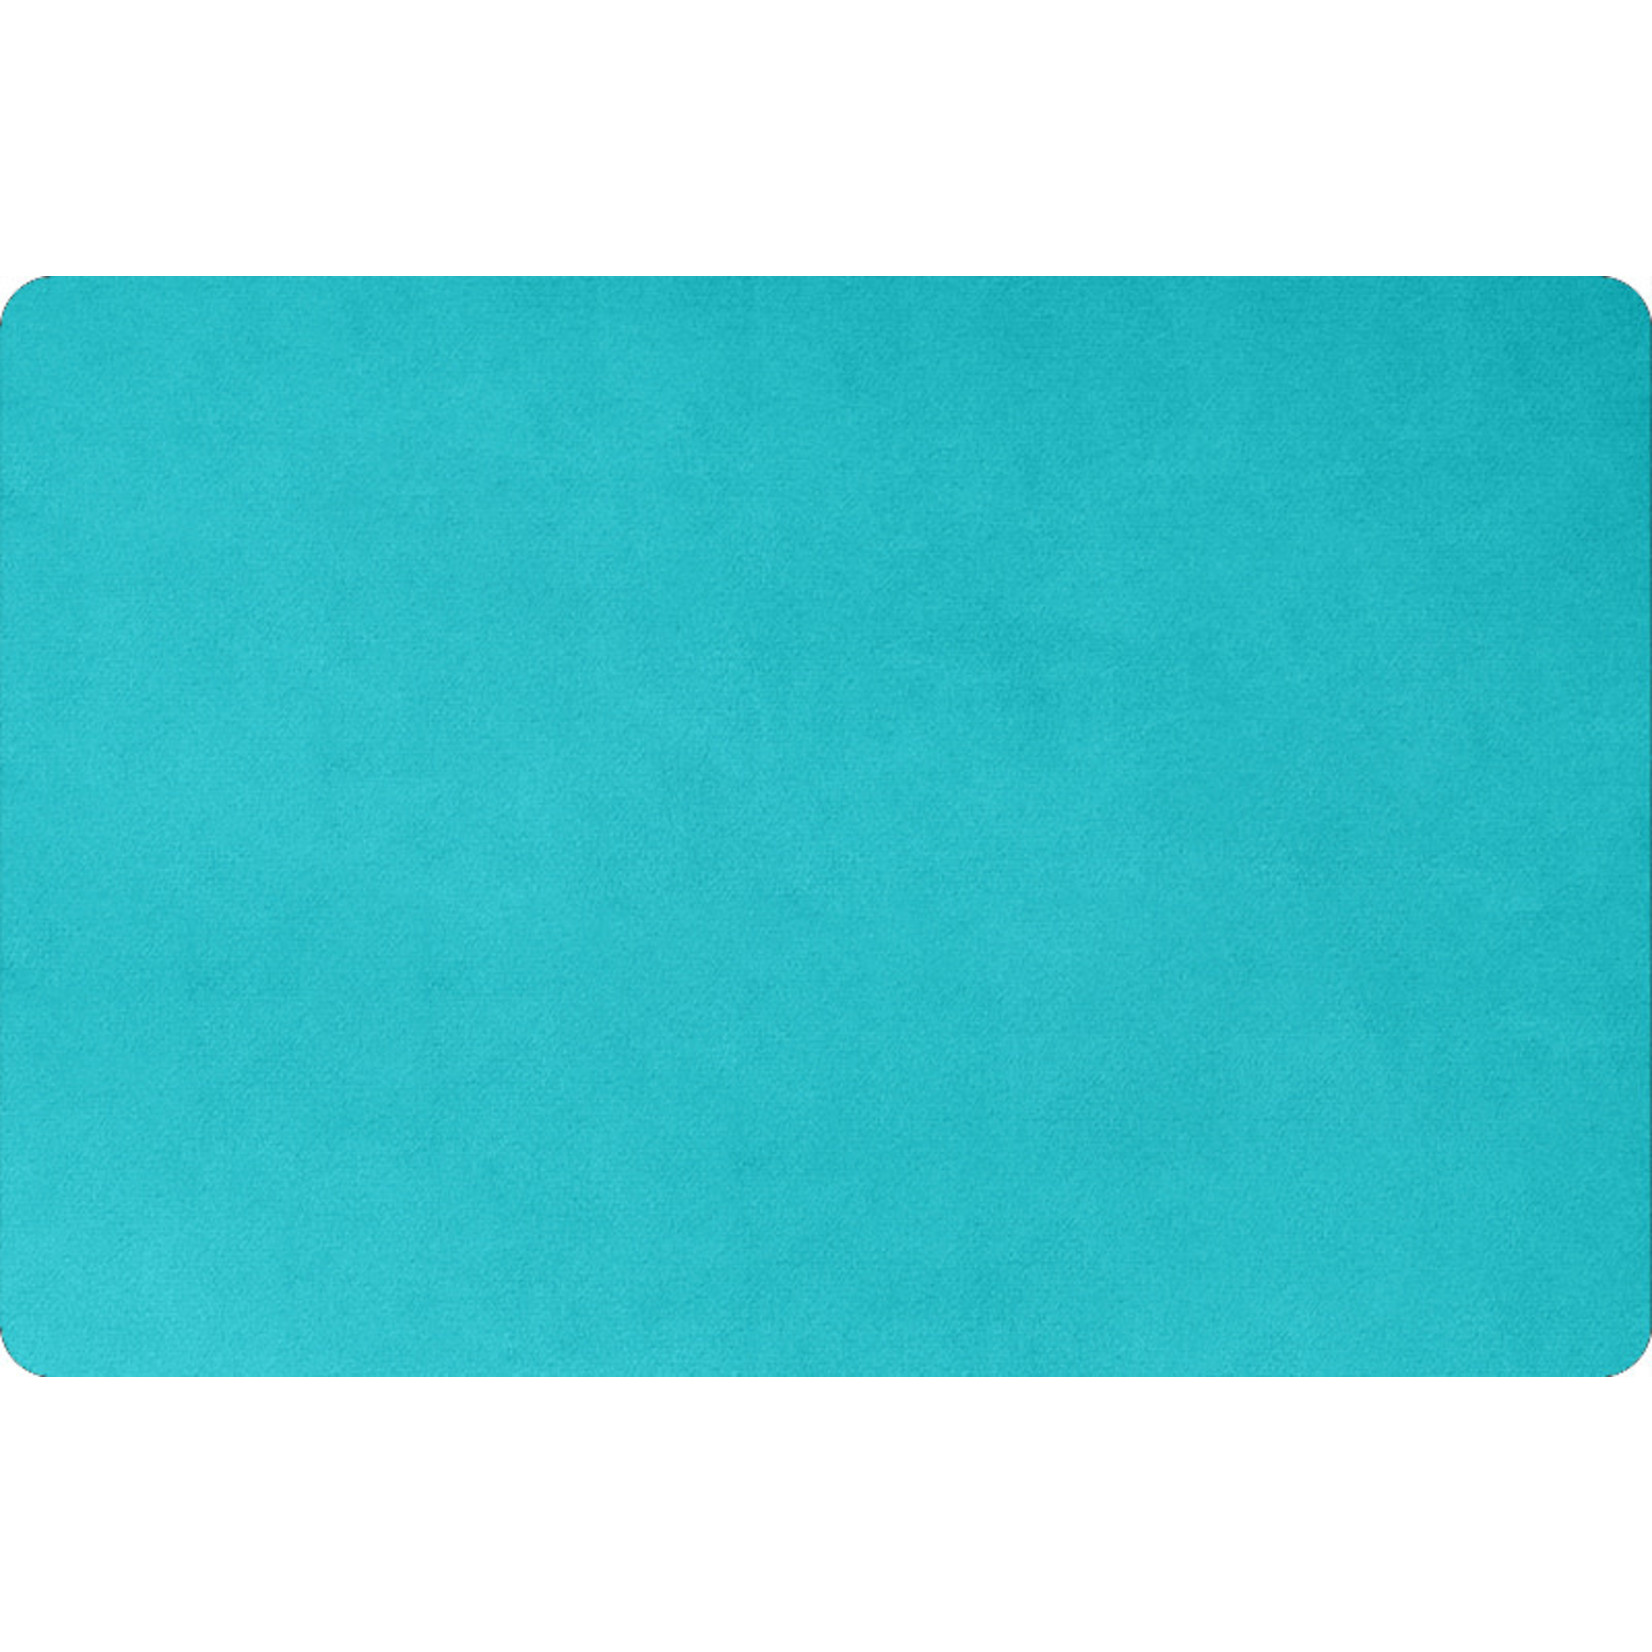 """Shannon Fabrics Minky, Extra Wide Solid Cuddle3, 90"""" Belize, (by the inch)"""